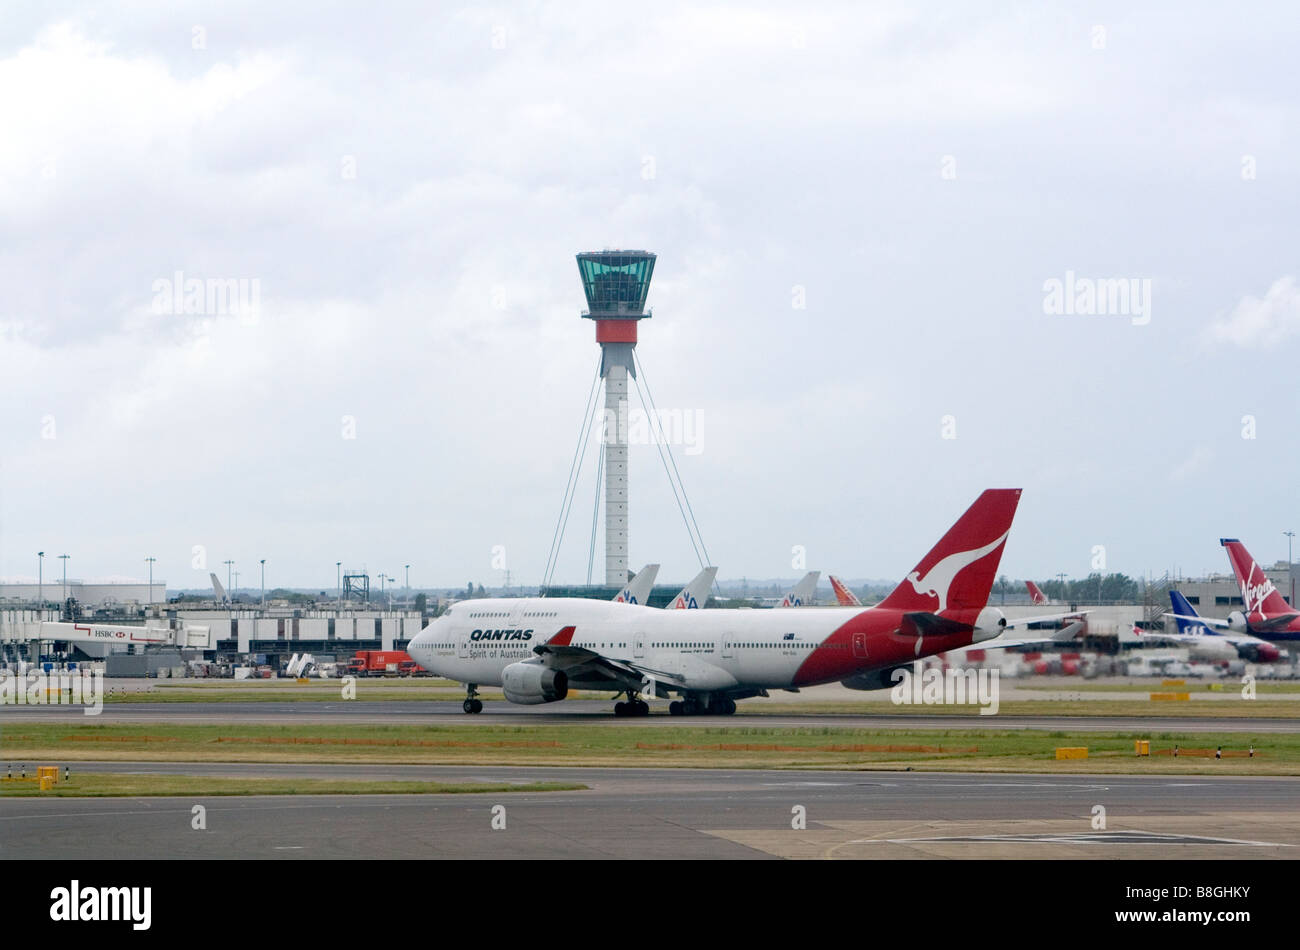 Airliners on the runway at London Heathrow Airport England United Kingdom - Stock Image